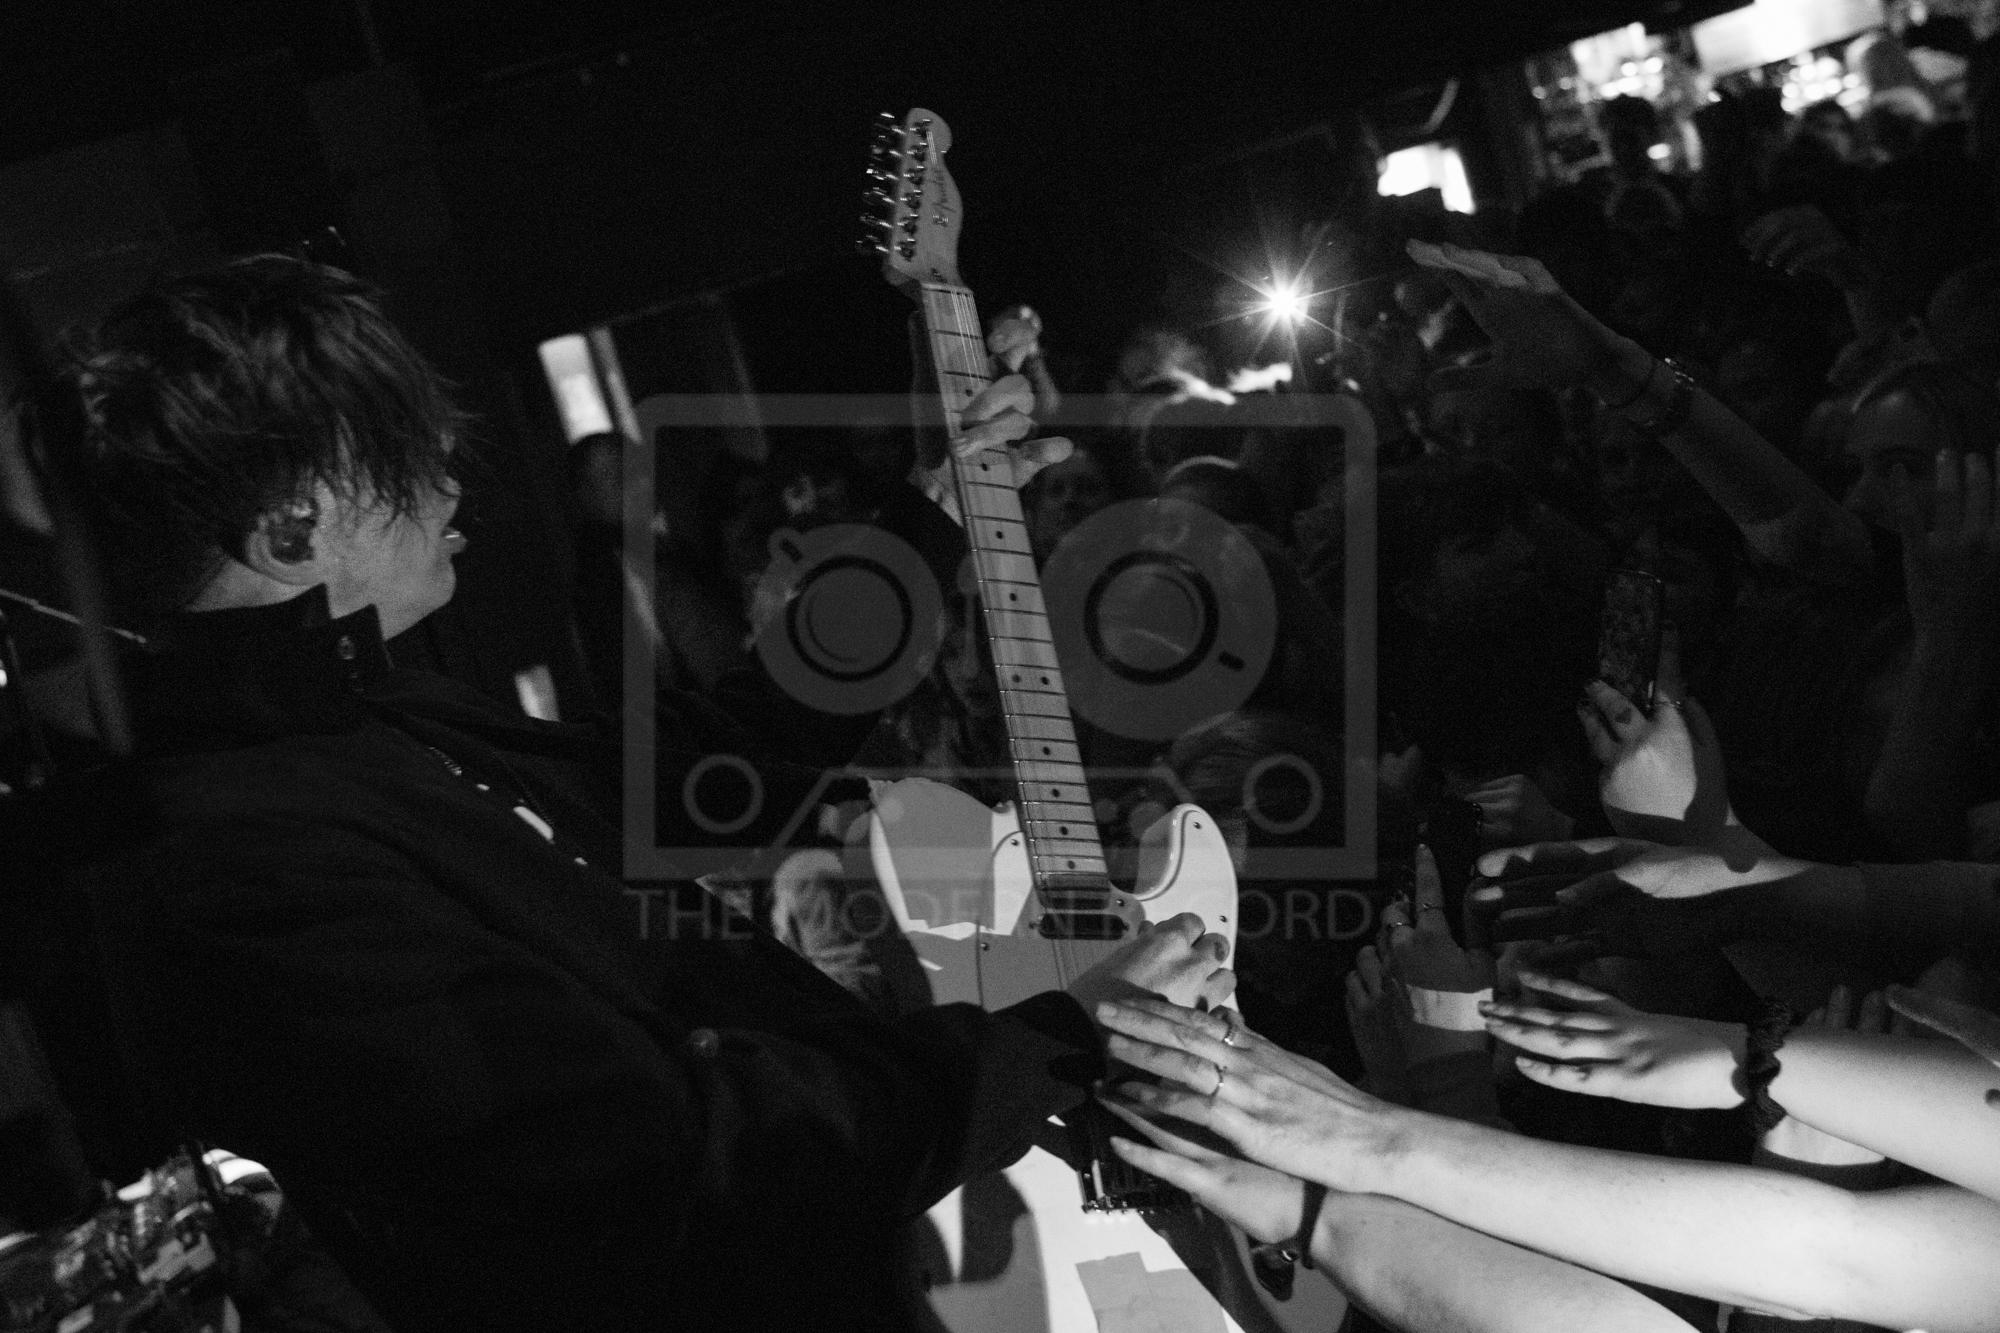 Yungblud - O2 Academy2, Newcastle - 10-03-19 Picture by Will Gorman Photo-7783.JPG